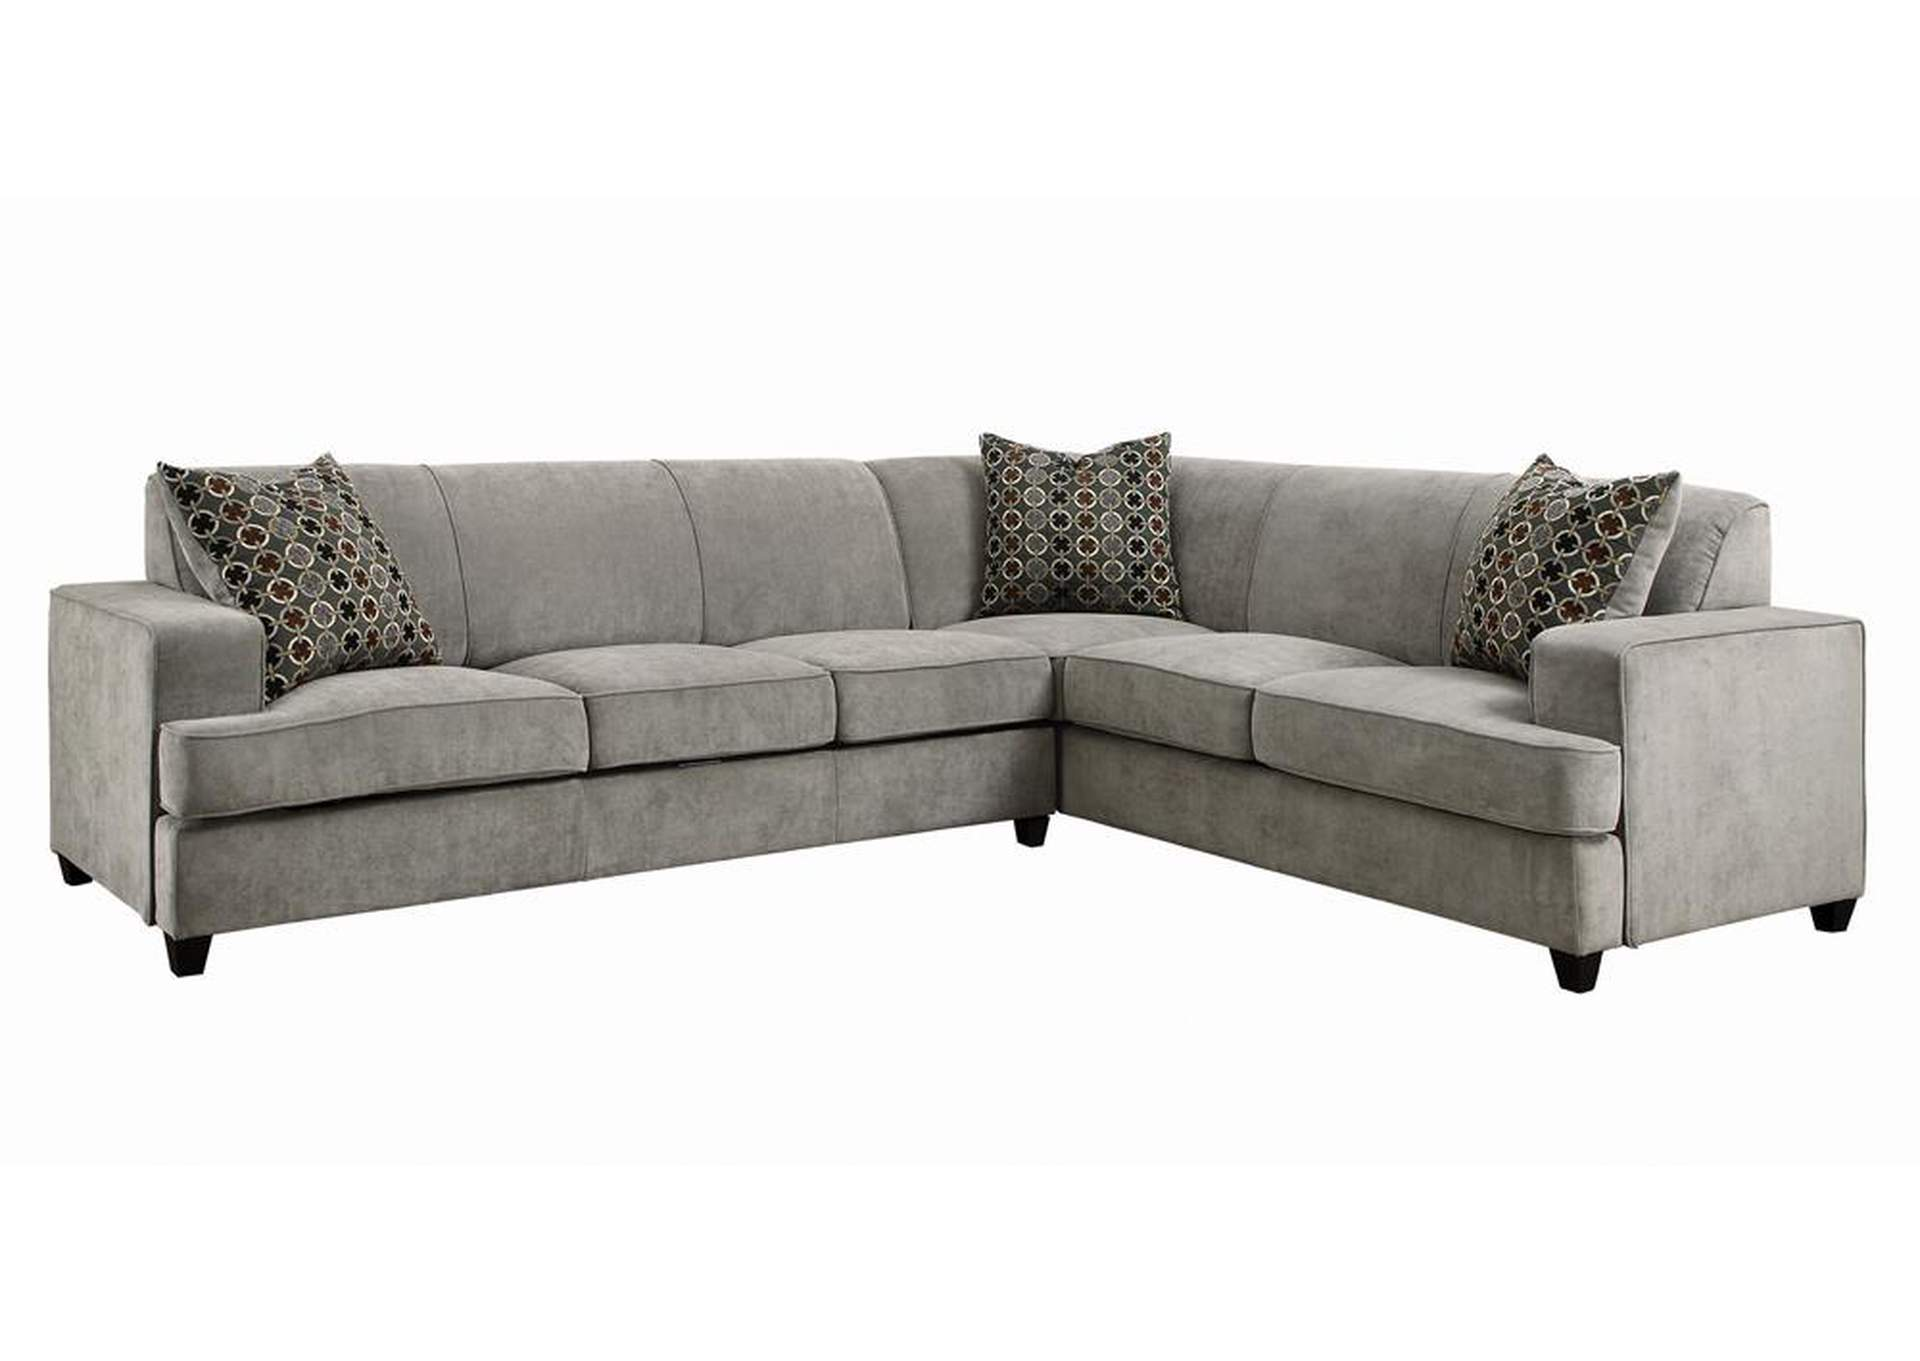 Schooner Tess Casual Grey Sectional,Coaster Furniture